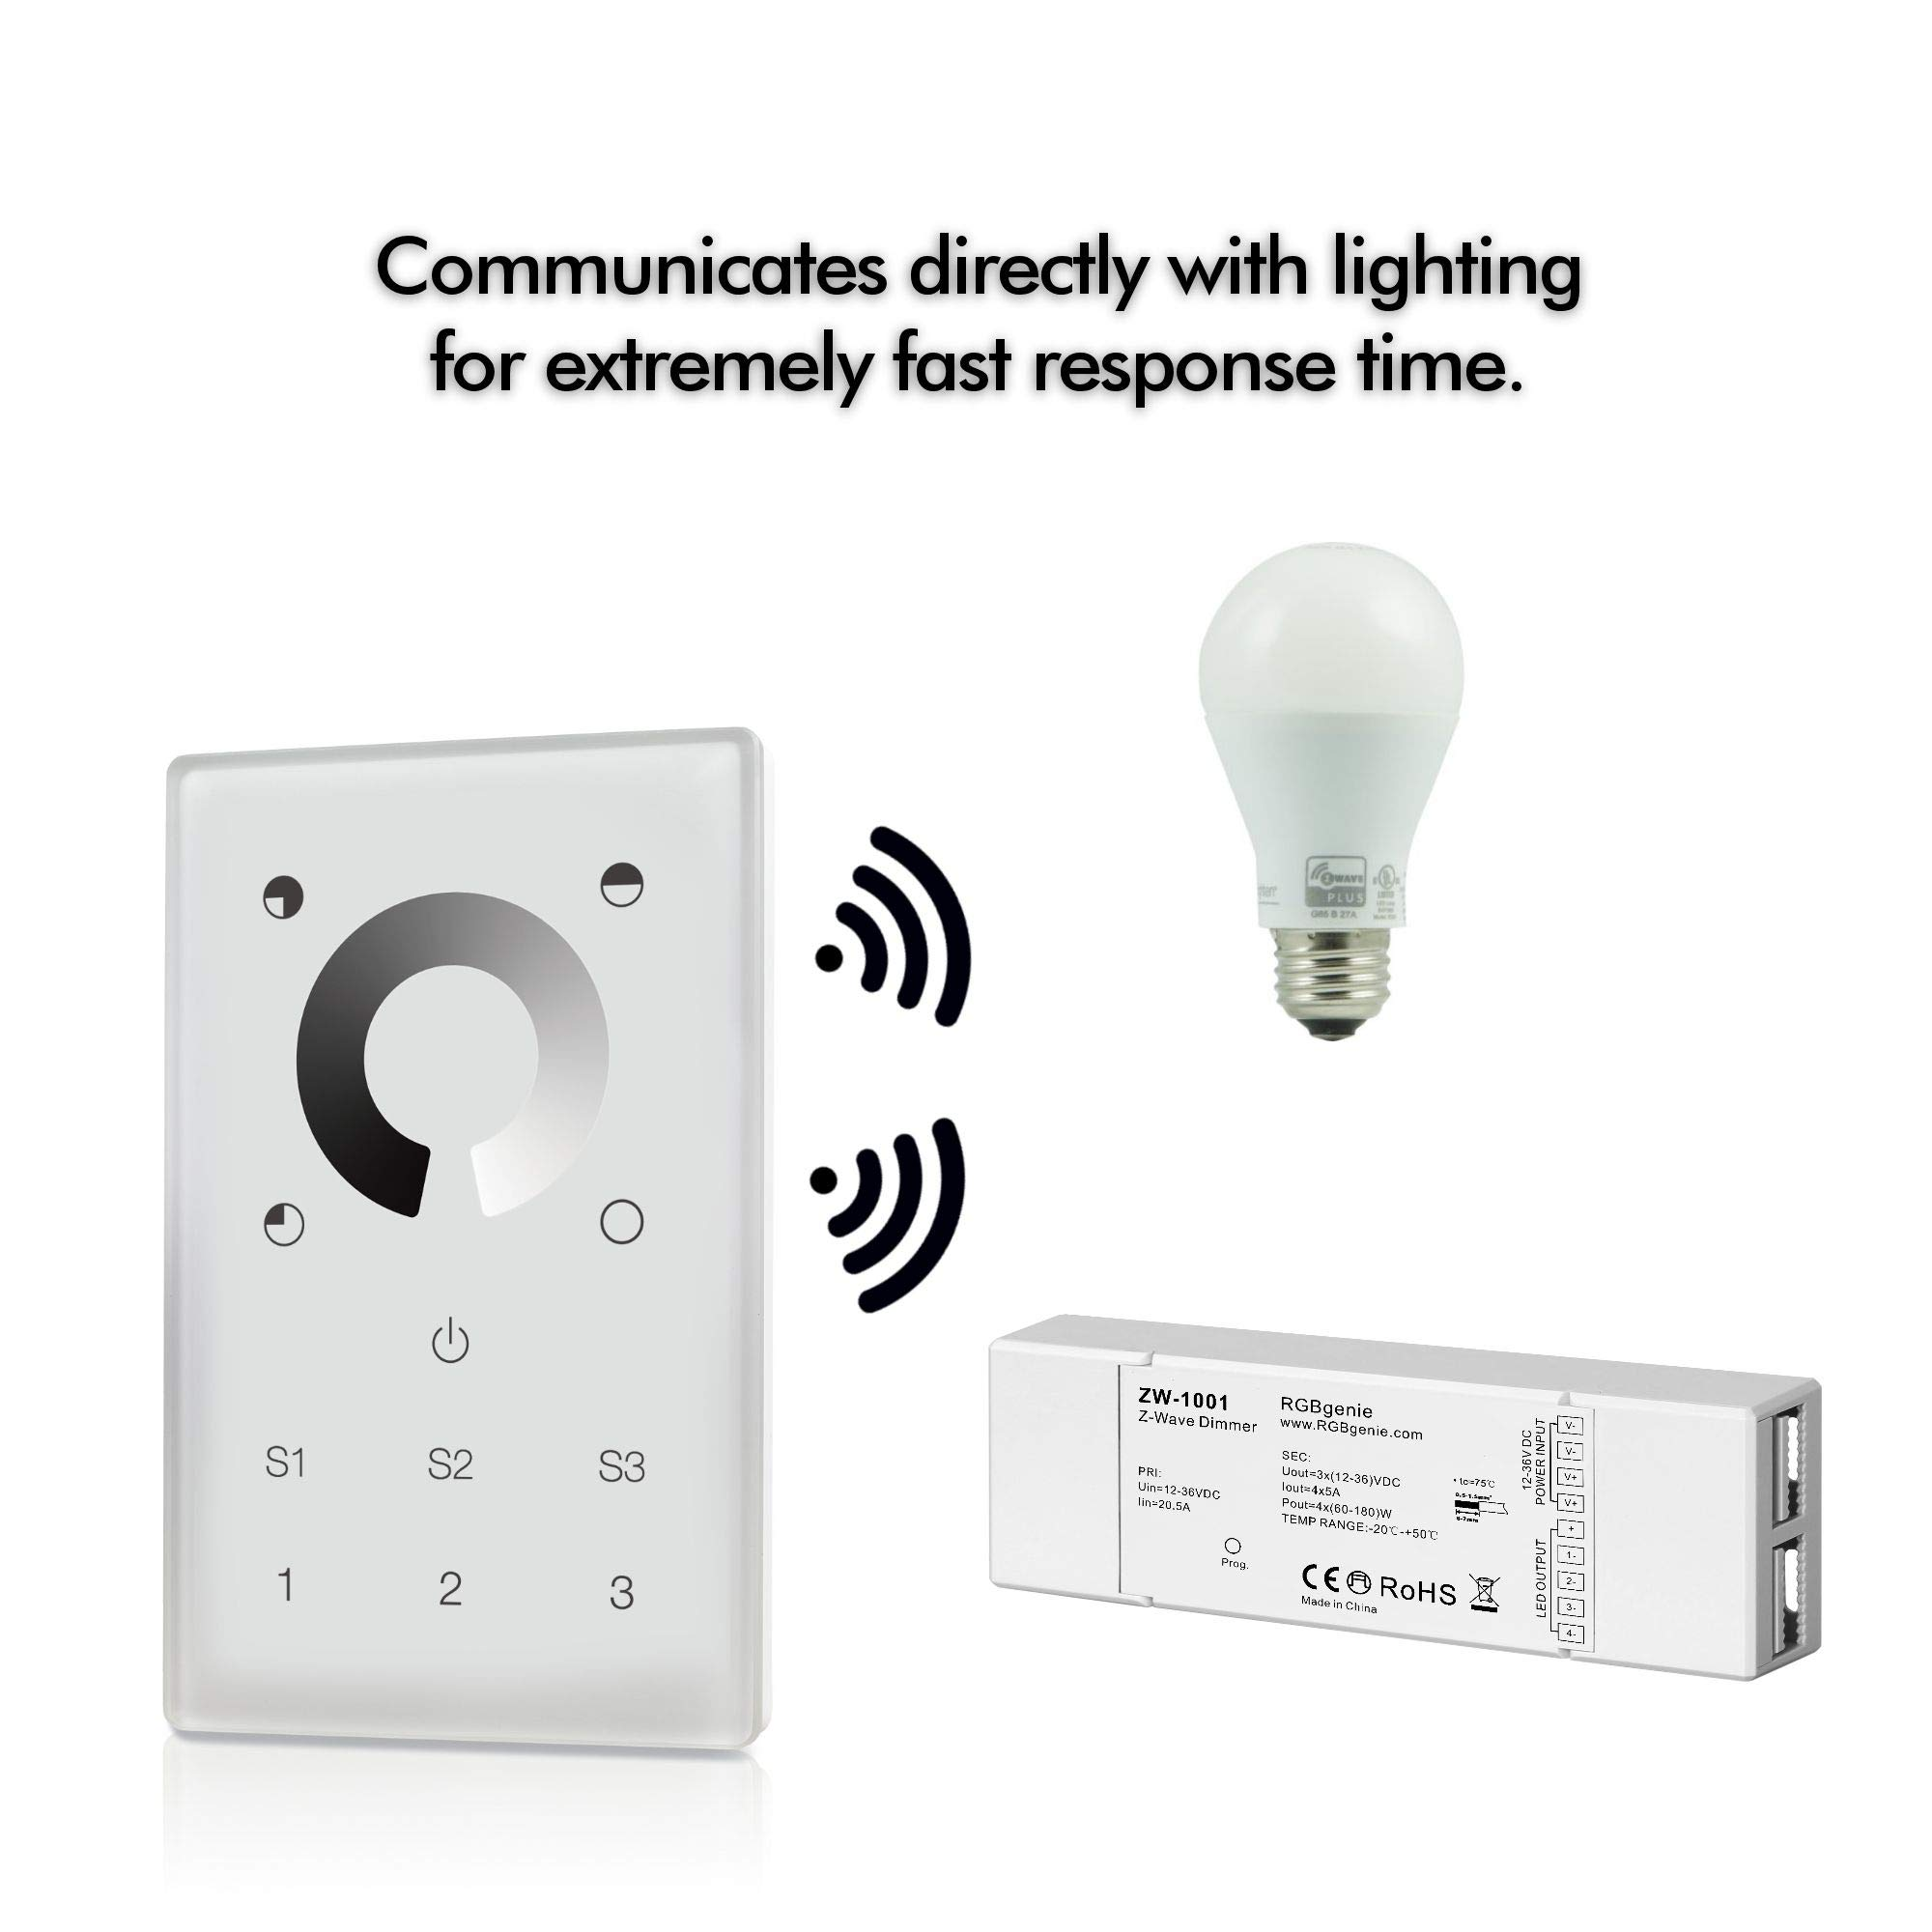 Z-Wave Touch Panel Controller and Dimmer with Built-in Repeater. Can control up to 12 Z-Wave strip lights or bulbs. Single Color, 3 Zone, 3 Scene recall, 110v input. RGBgenie ZW-3001 (white) by RGBgenie (Image #6)